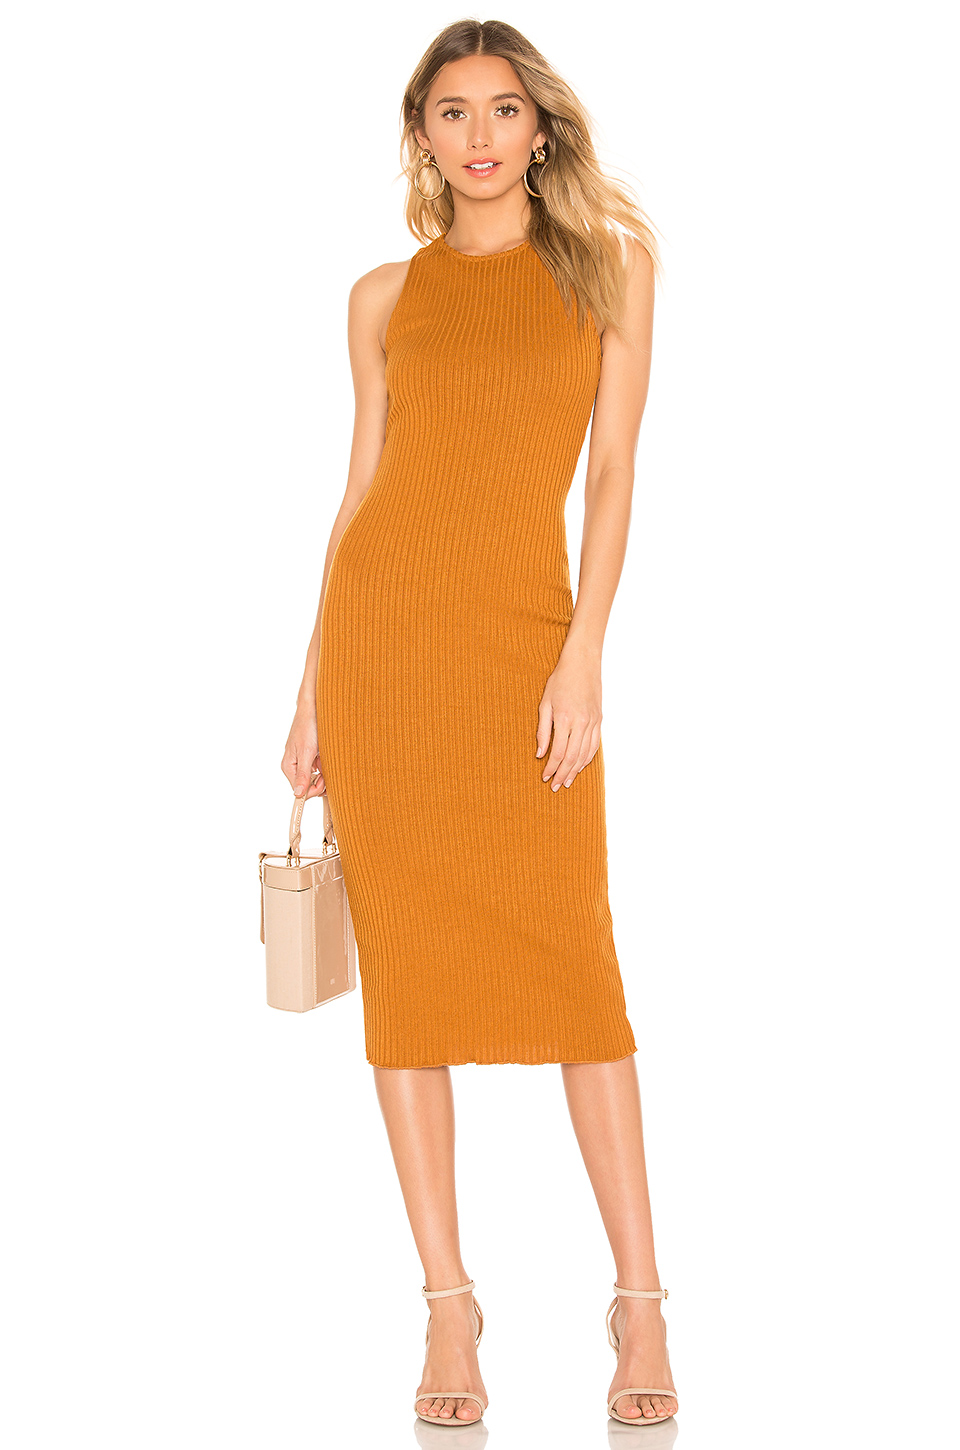 House Of Harlow 1960 House Of Harlow X Revolve 1960 Shannon Dress In Toffee